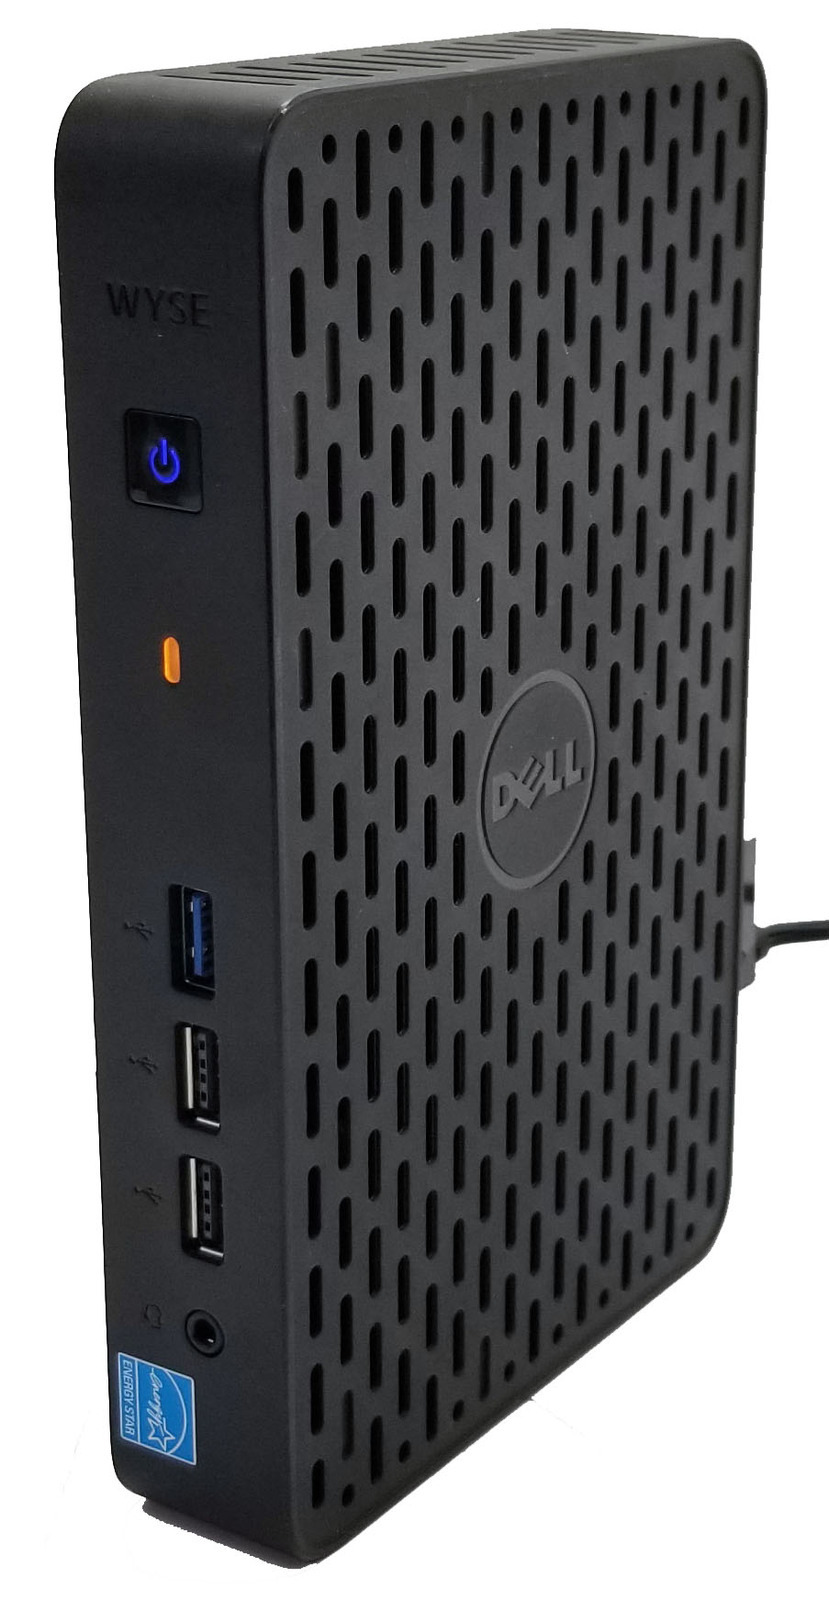 Dell wyse n03d thin client 001